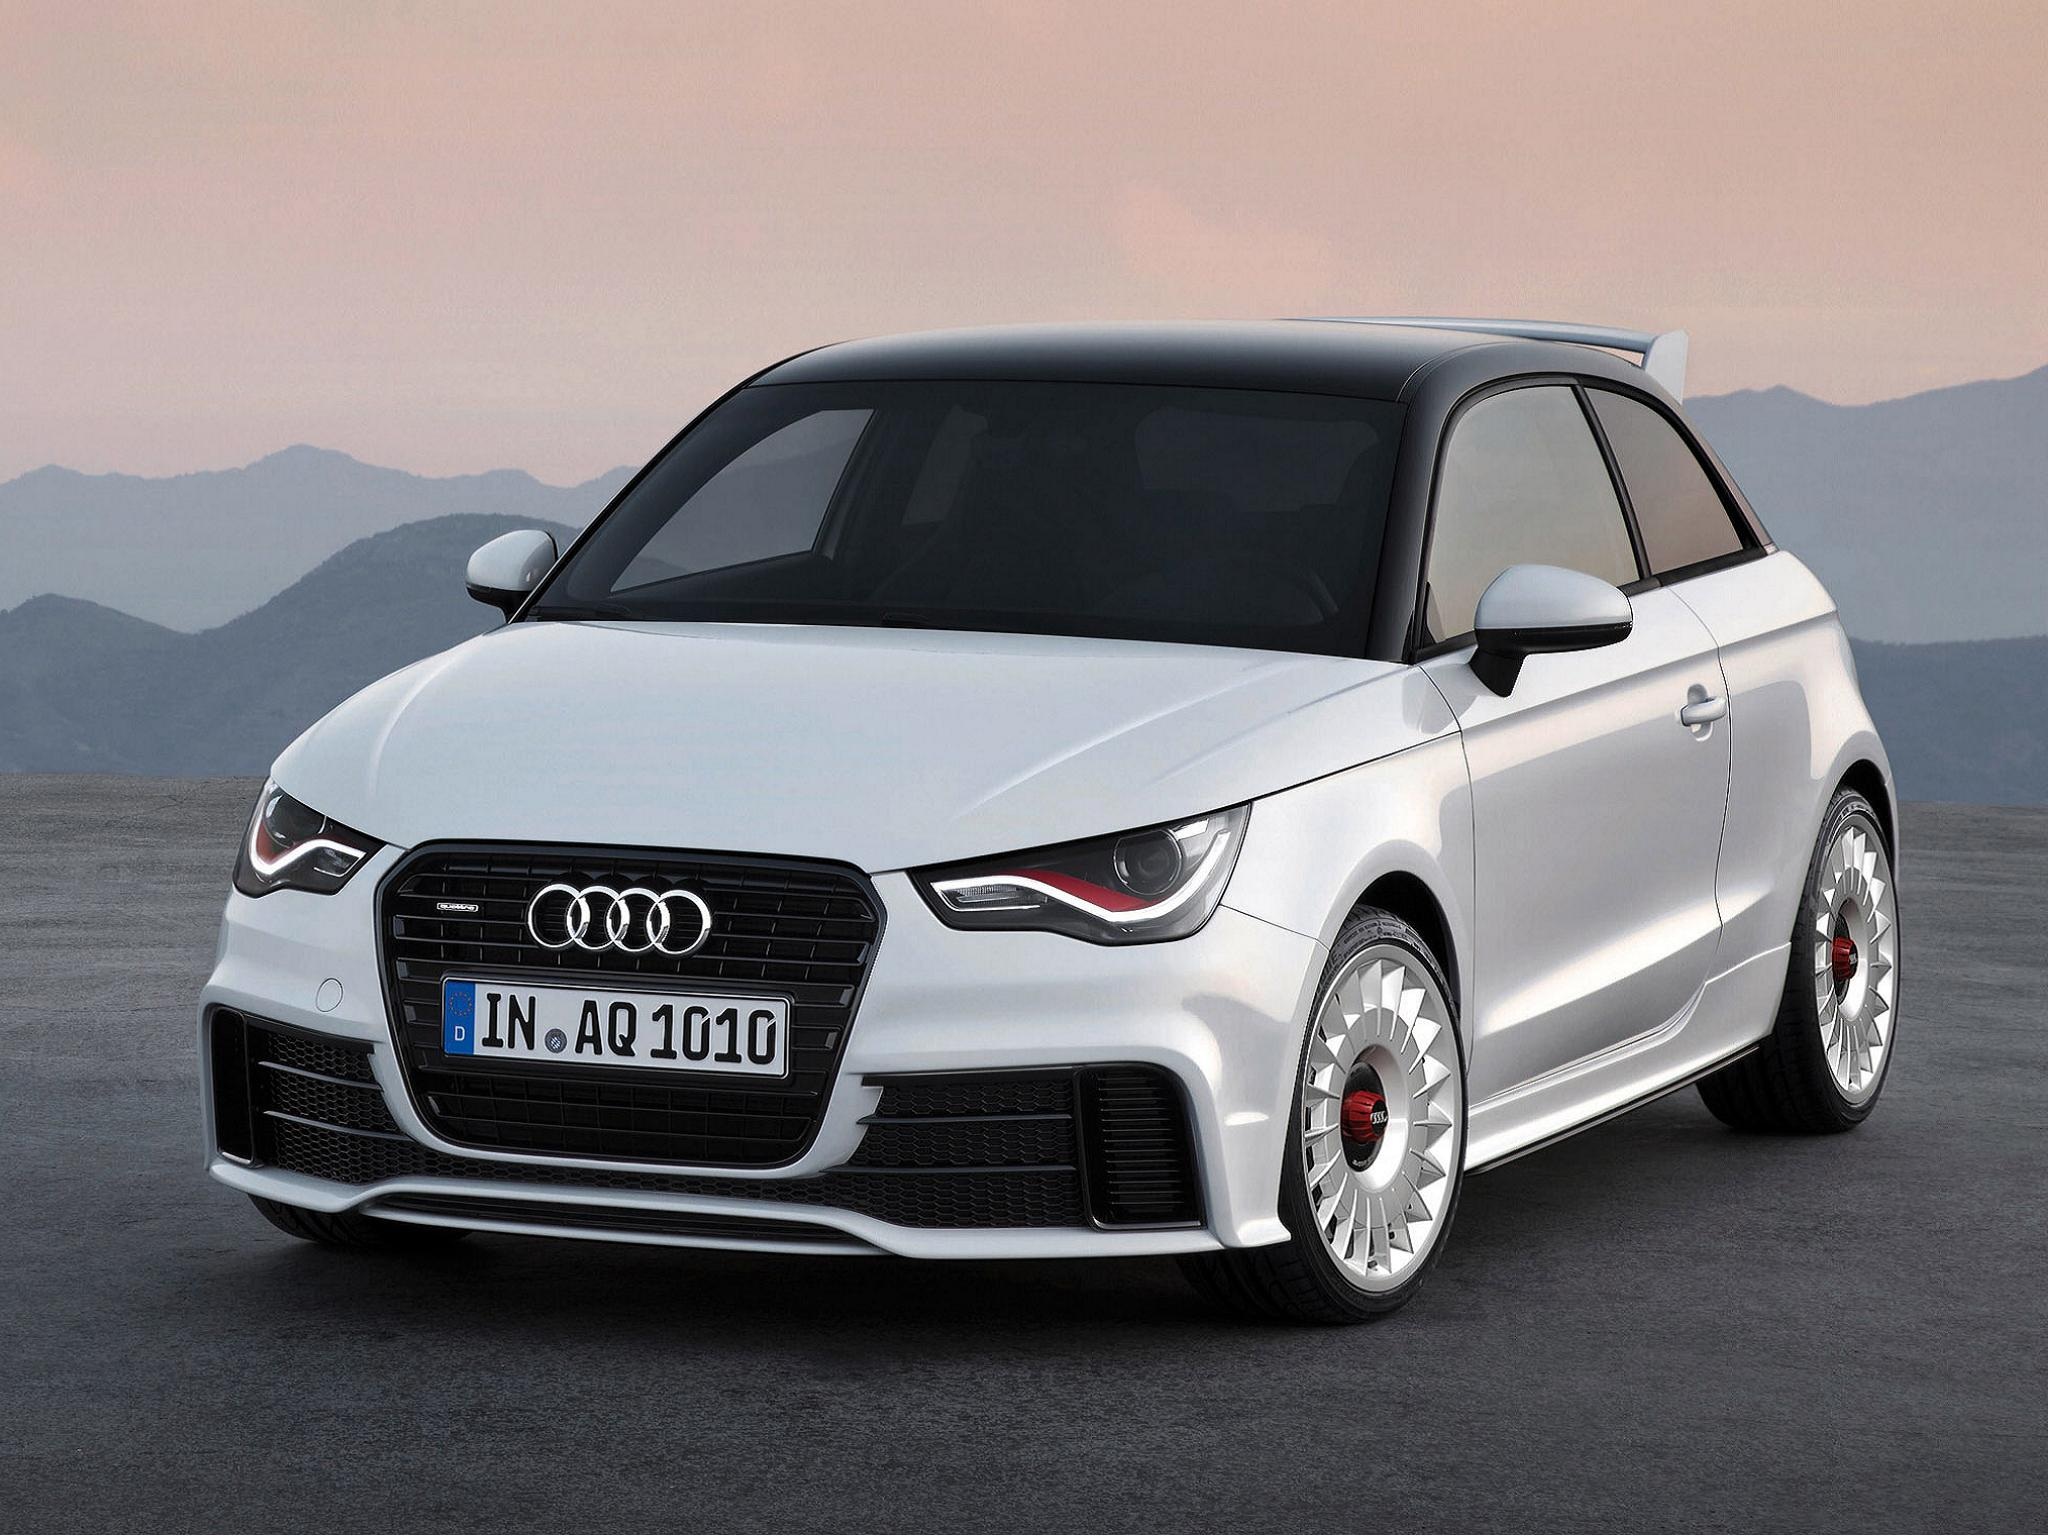 audi a1 quattro limited edition 2012 audi photo. Black Bedroom Furniture Sets. Home Design Ideas